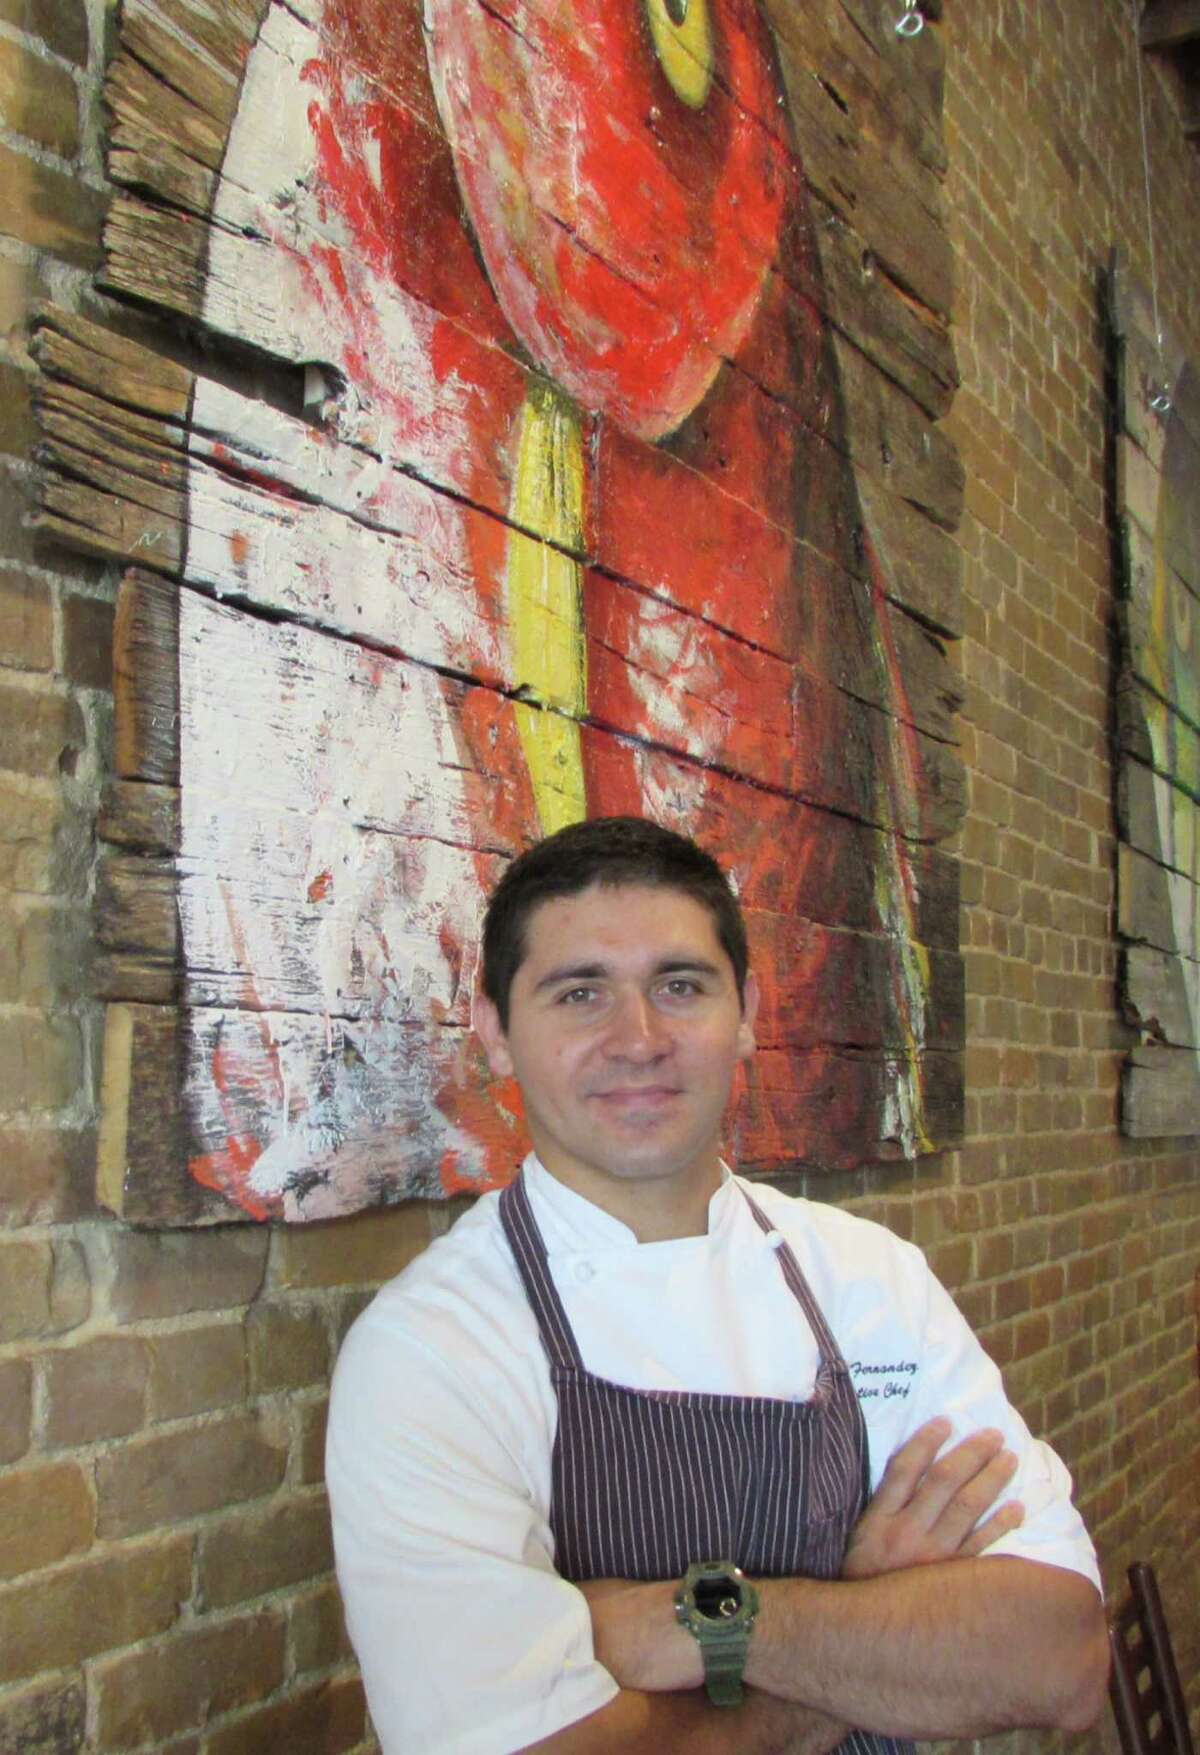 Diego Fernandez, the son of Azuca owner Rene Fernandez, is co-owner of Starfish, and the soon-to-open Hearsay.